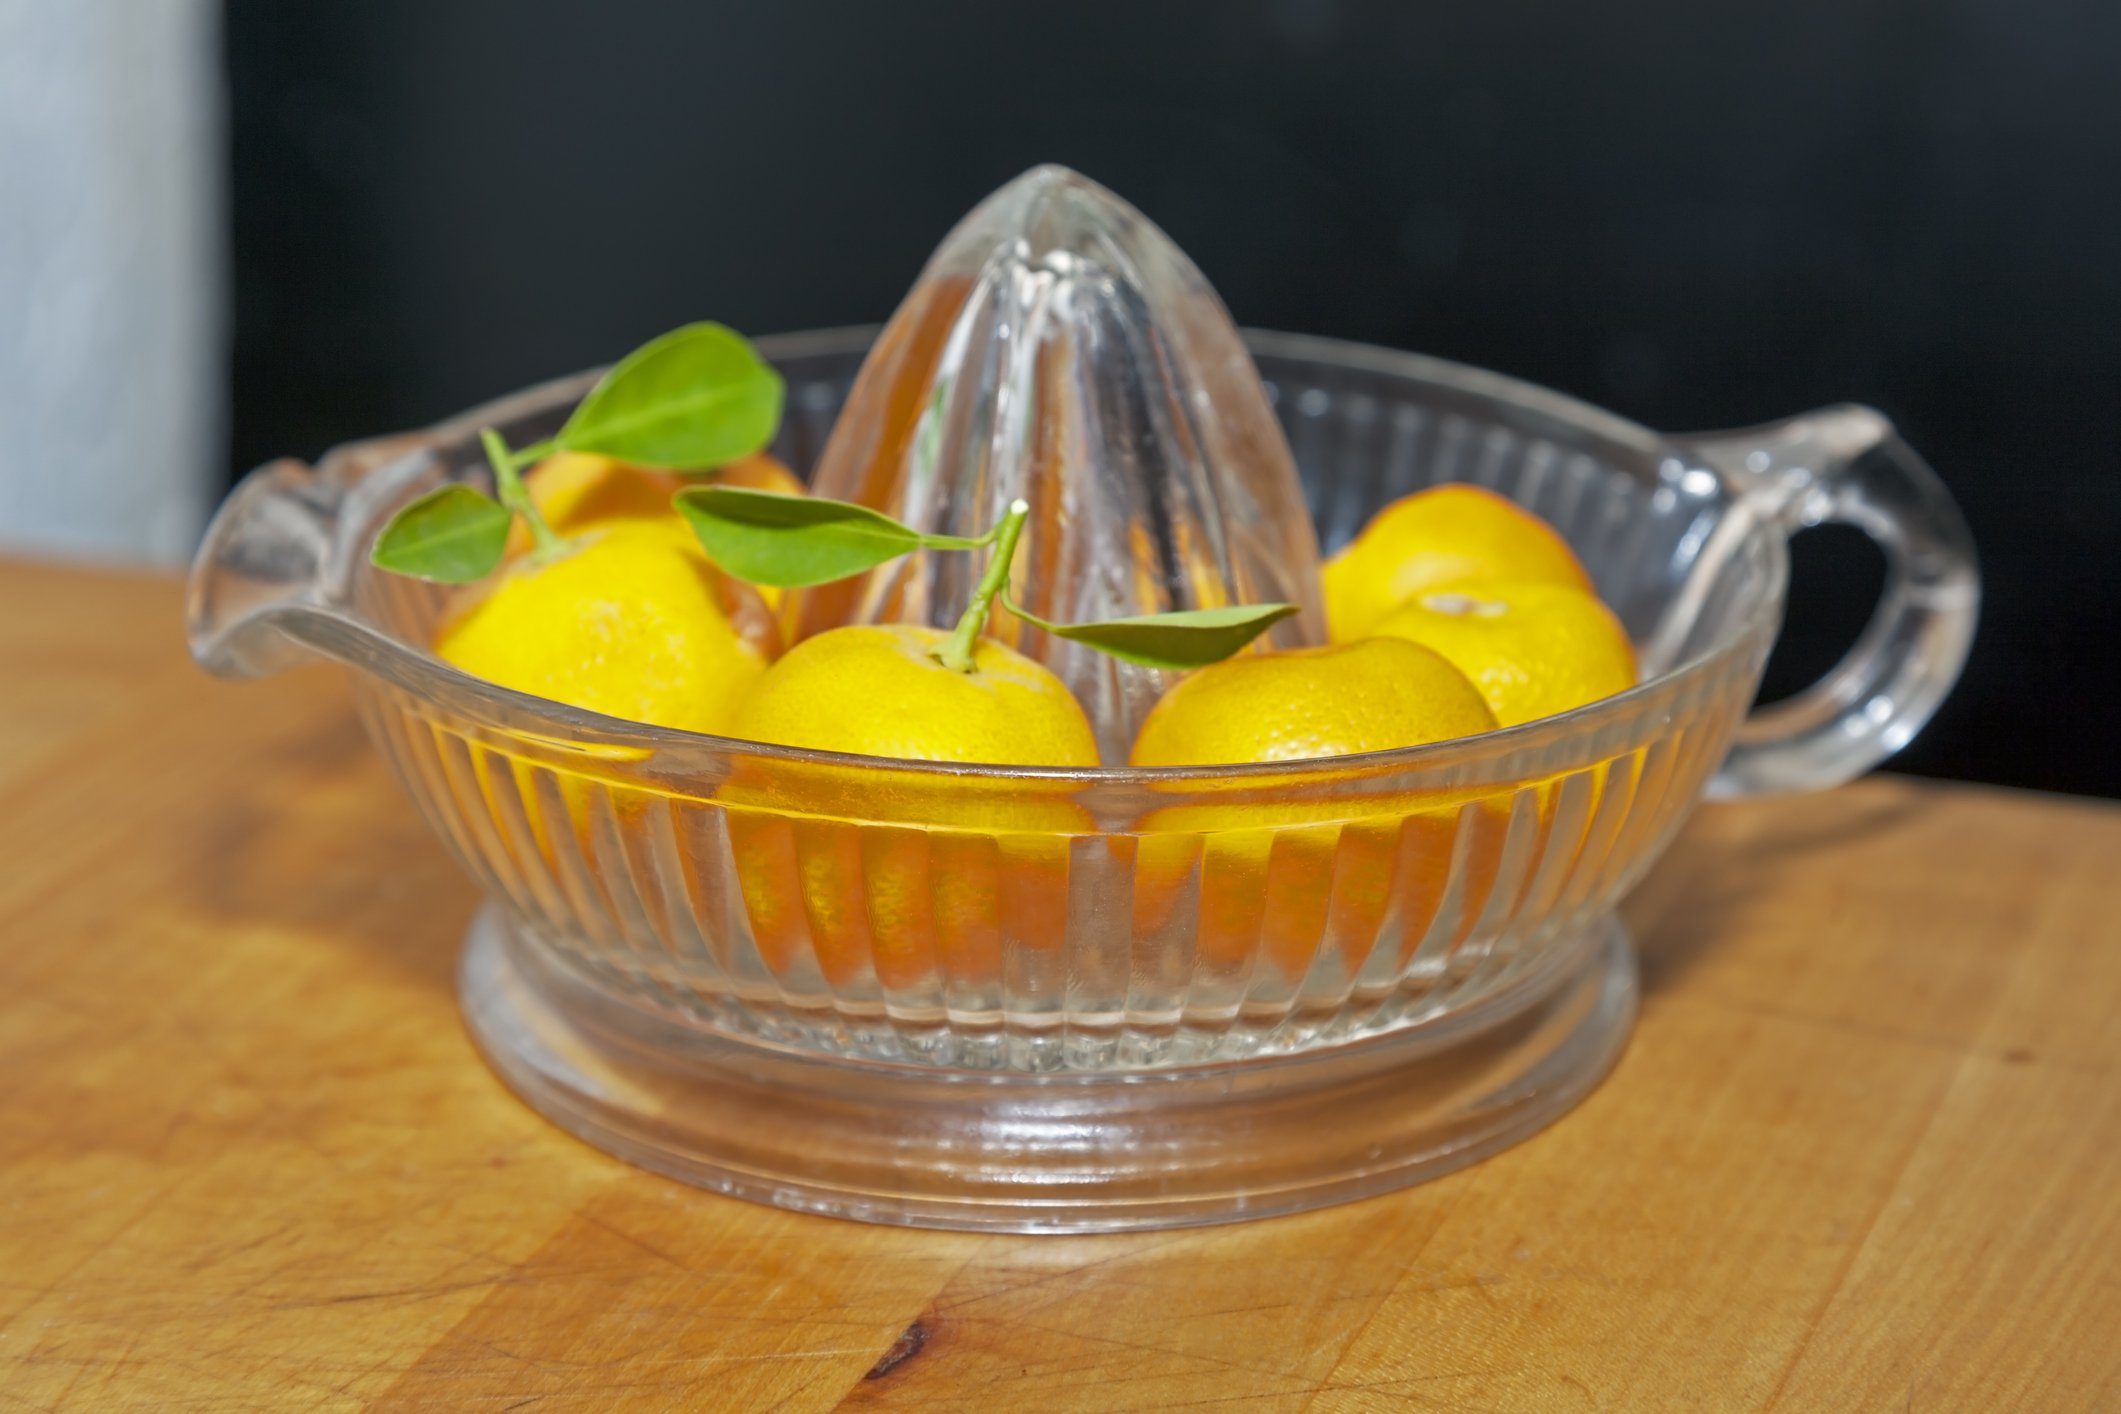 Photo of Calamondin oranges arranged in vintage juicer | Getty Images